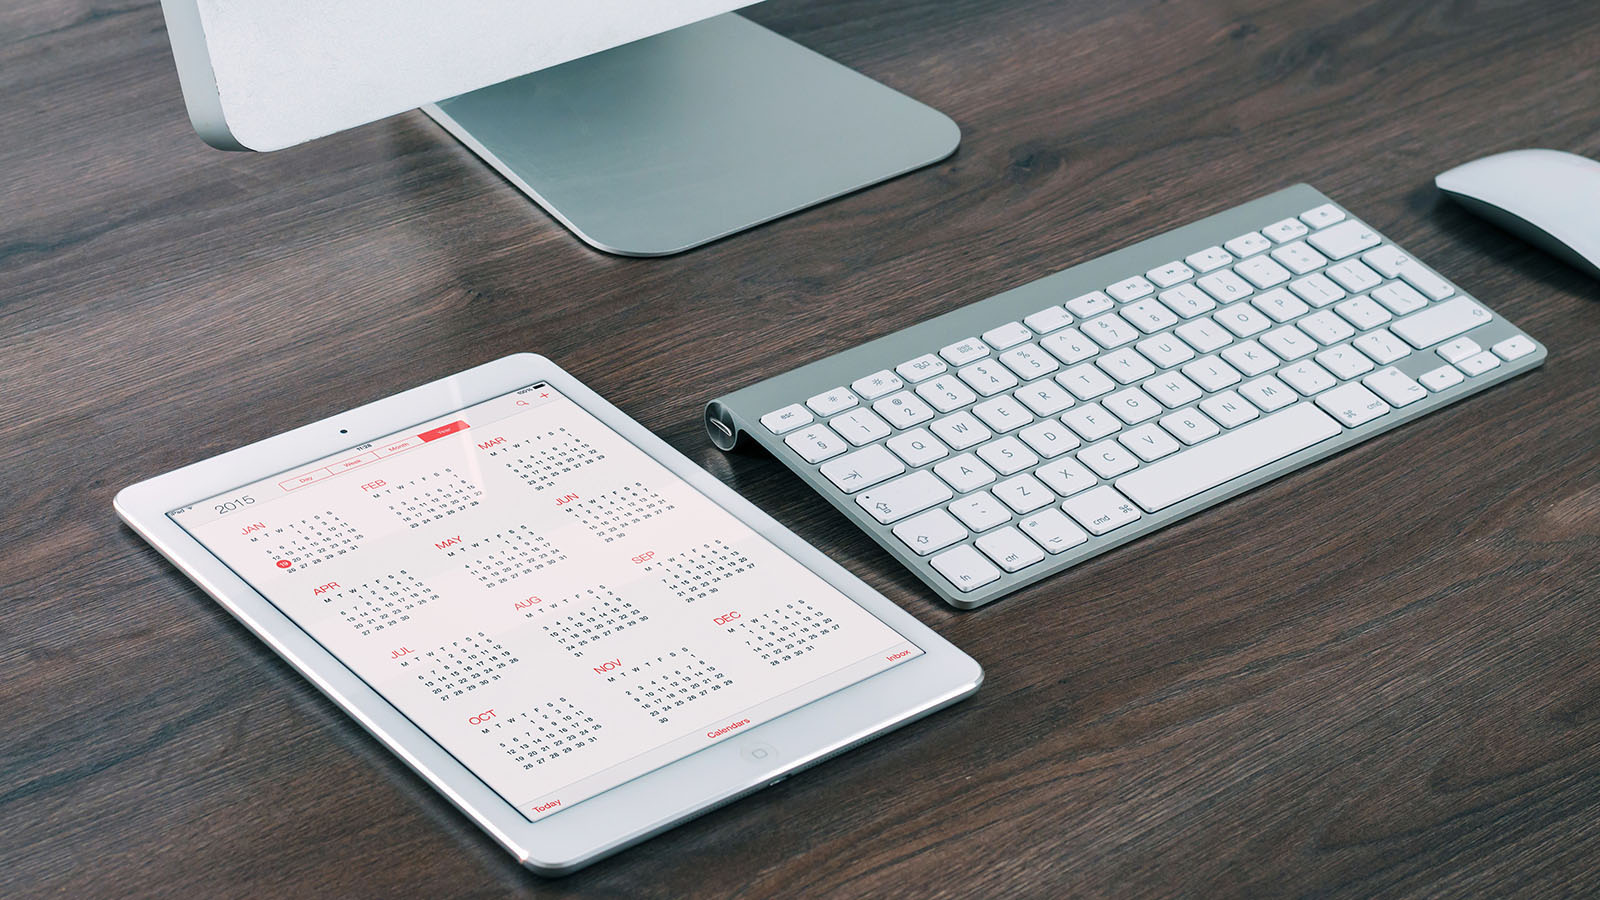 A calendar app open on an ipad laying on a desk next to an imac, keyboard and mouse.